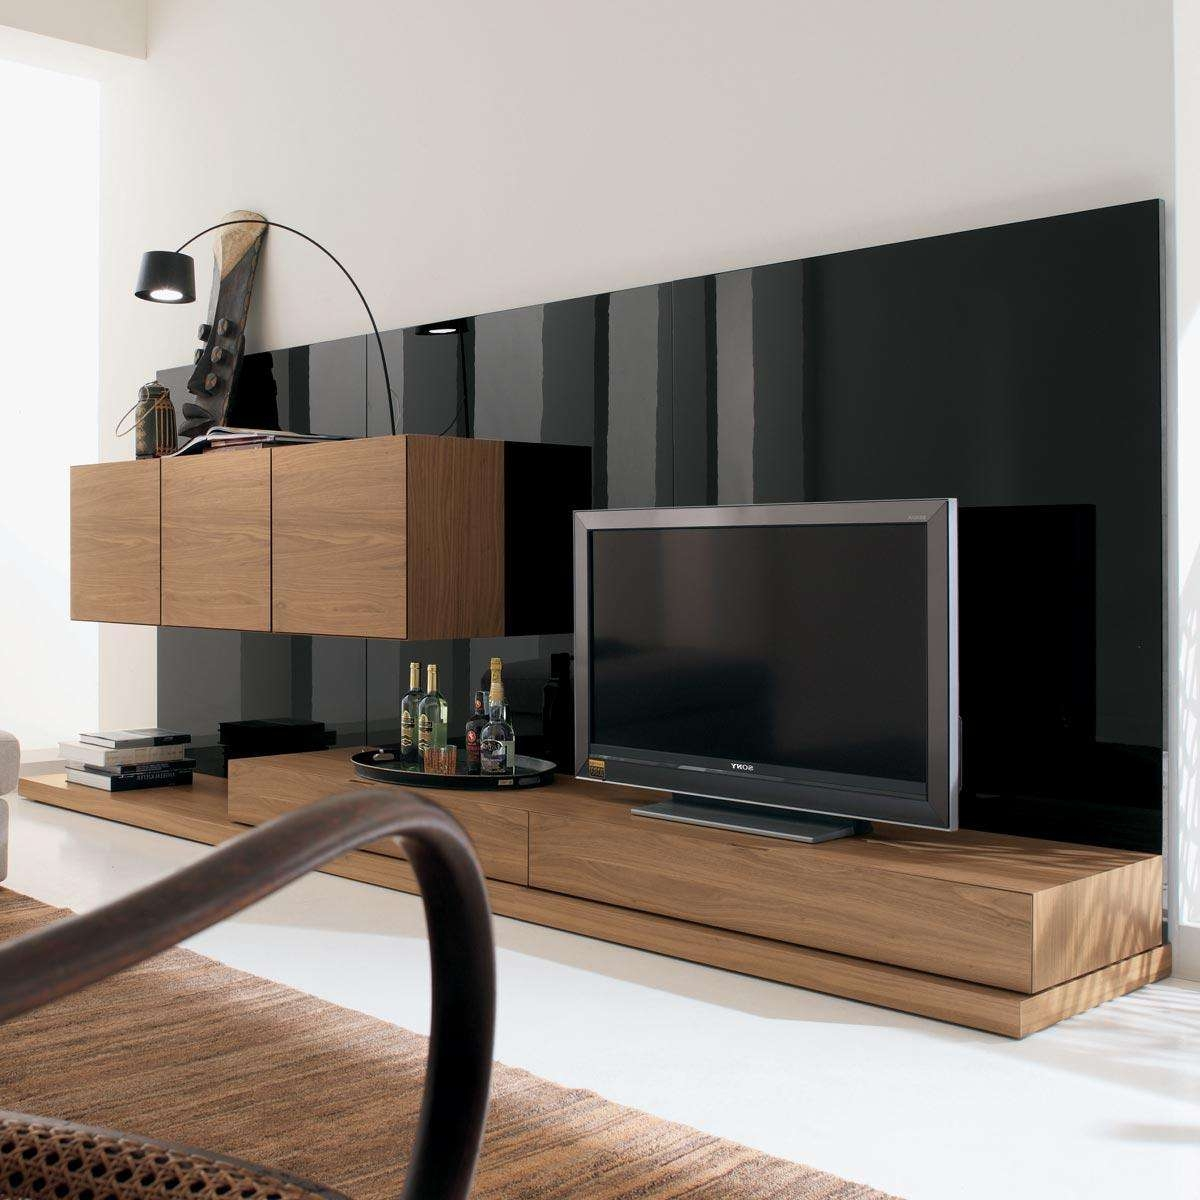 Modern Nature Wood Big Screen Tv Stand Wall Mounted Living Room Inside Contemporary Tv Cabinets (View 19 of 20)